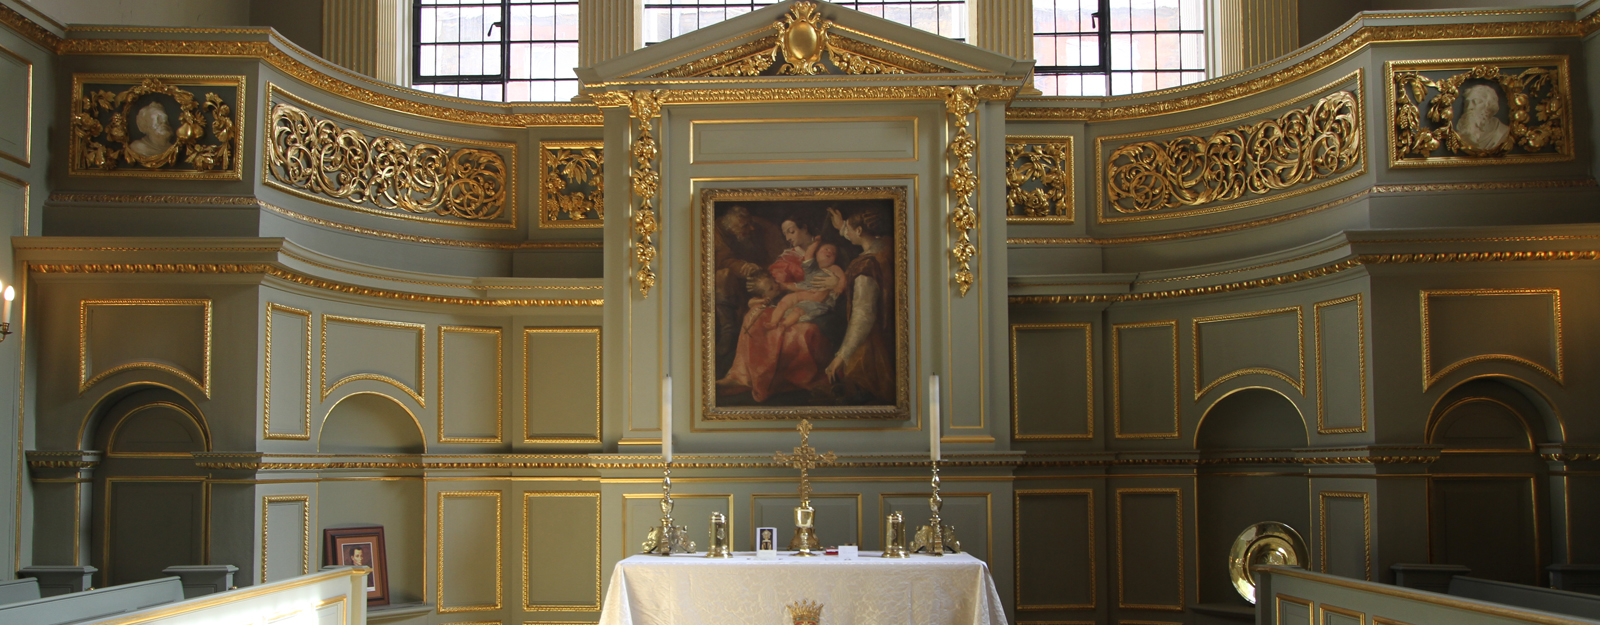 Interior of The Queen's Chapel, St James's Palace